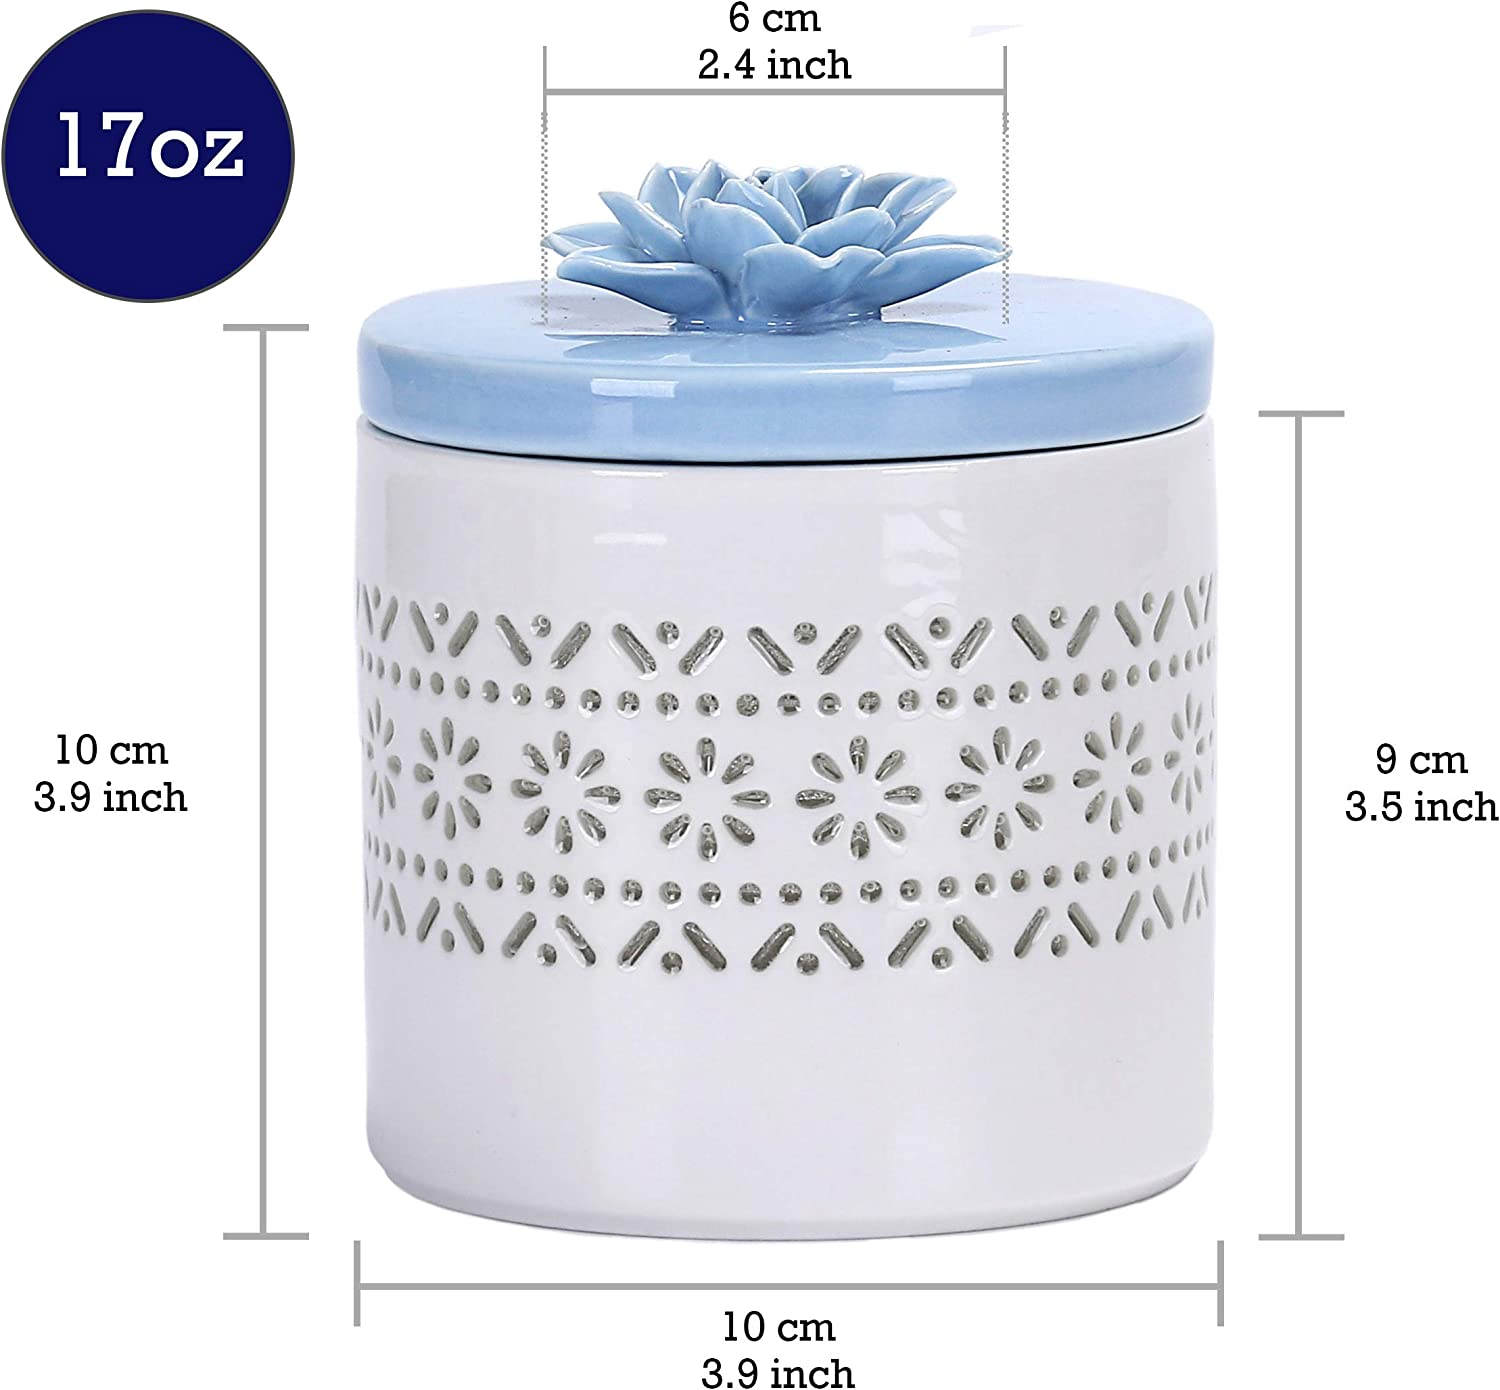 Bico Handcrafted Porcelain Baby Blue Lotus Translucent 500ml Apothercary Jar Storage Jar for Bathroom and Dresser Canister